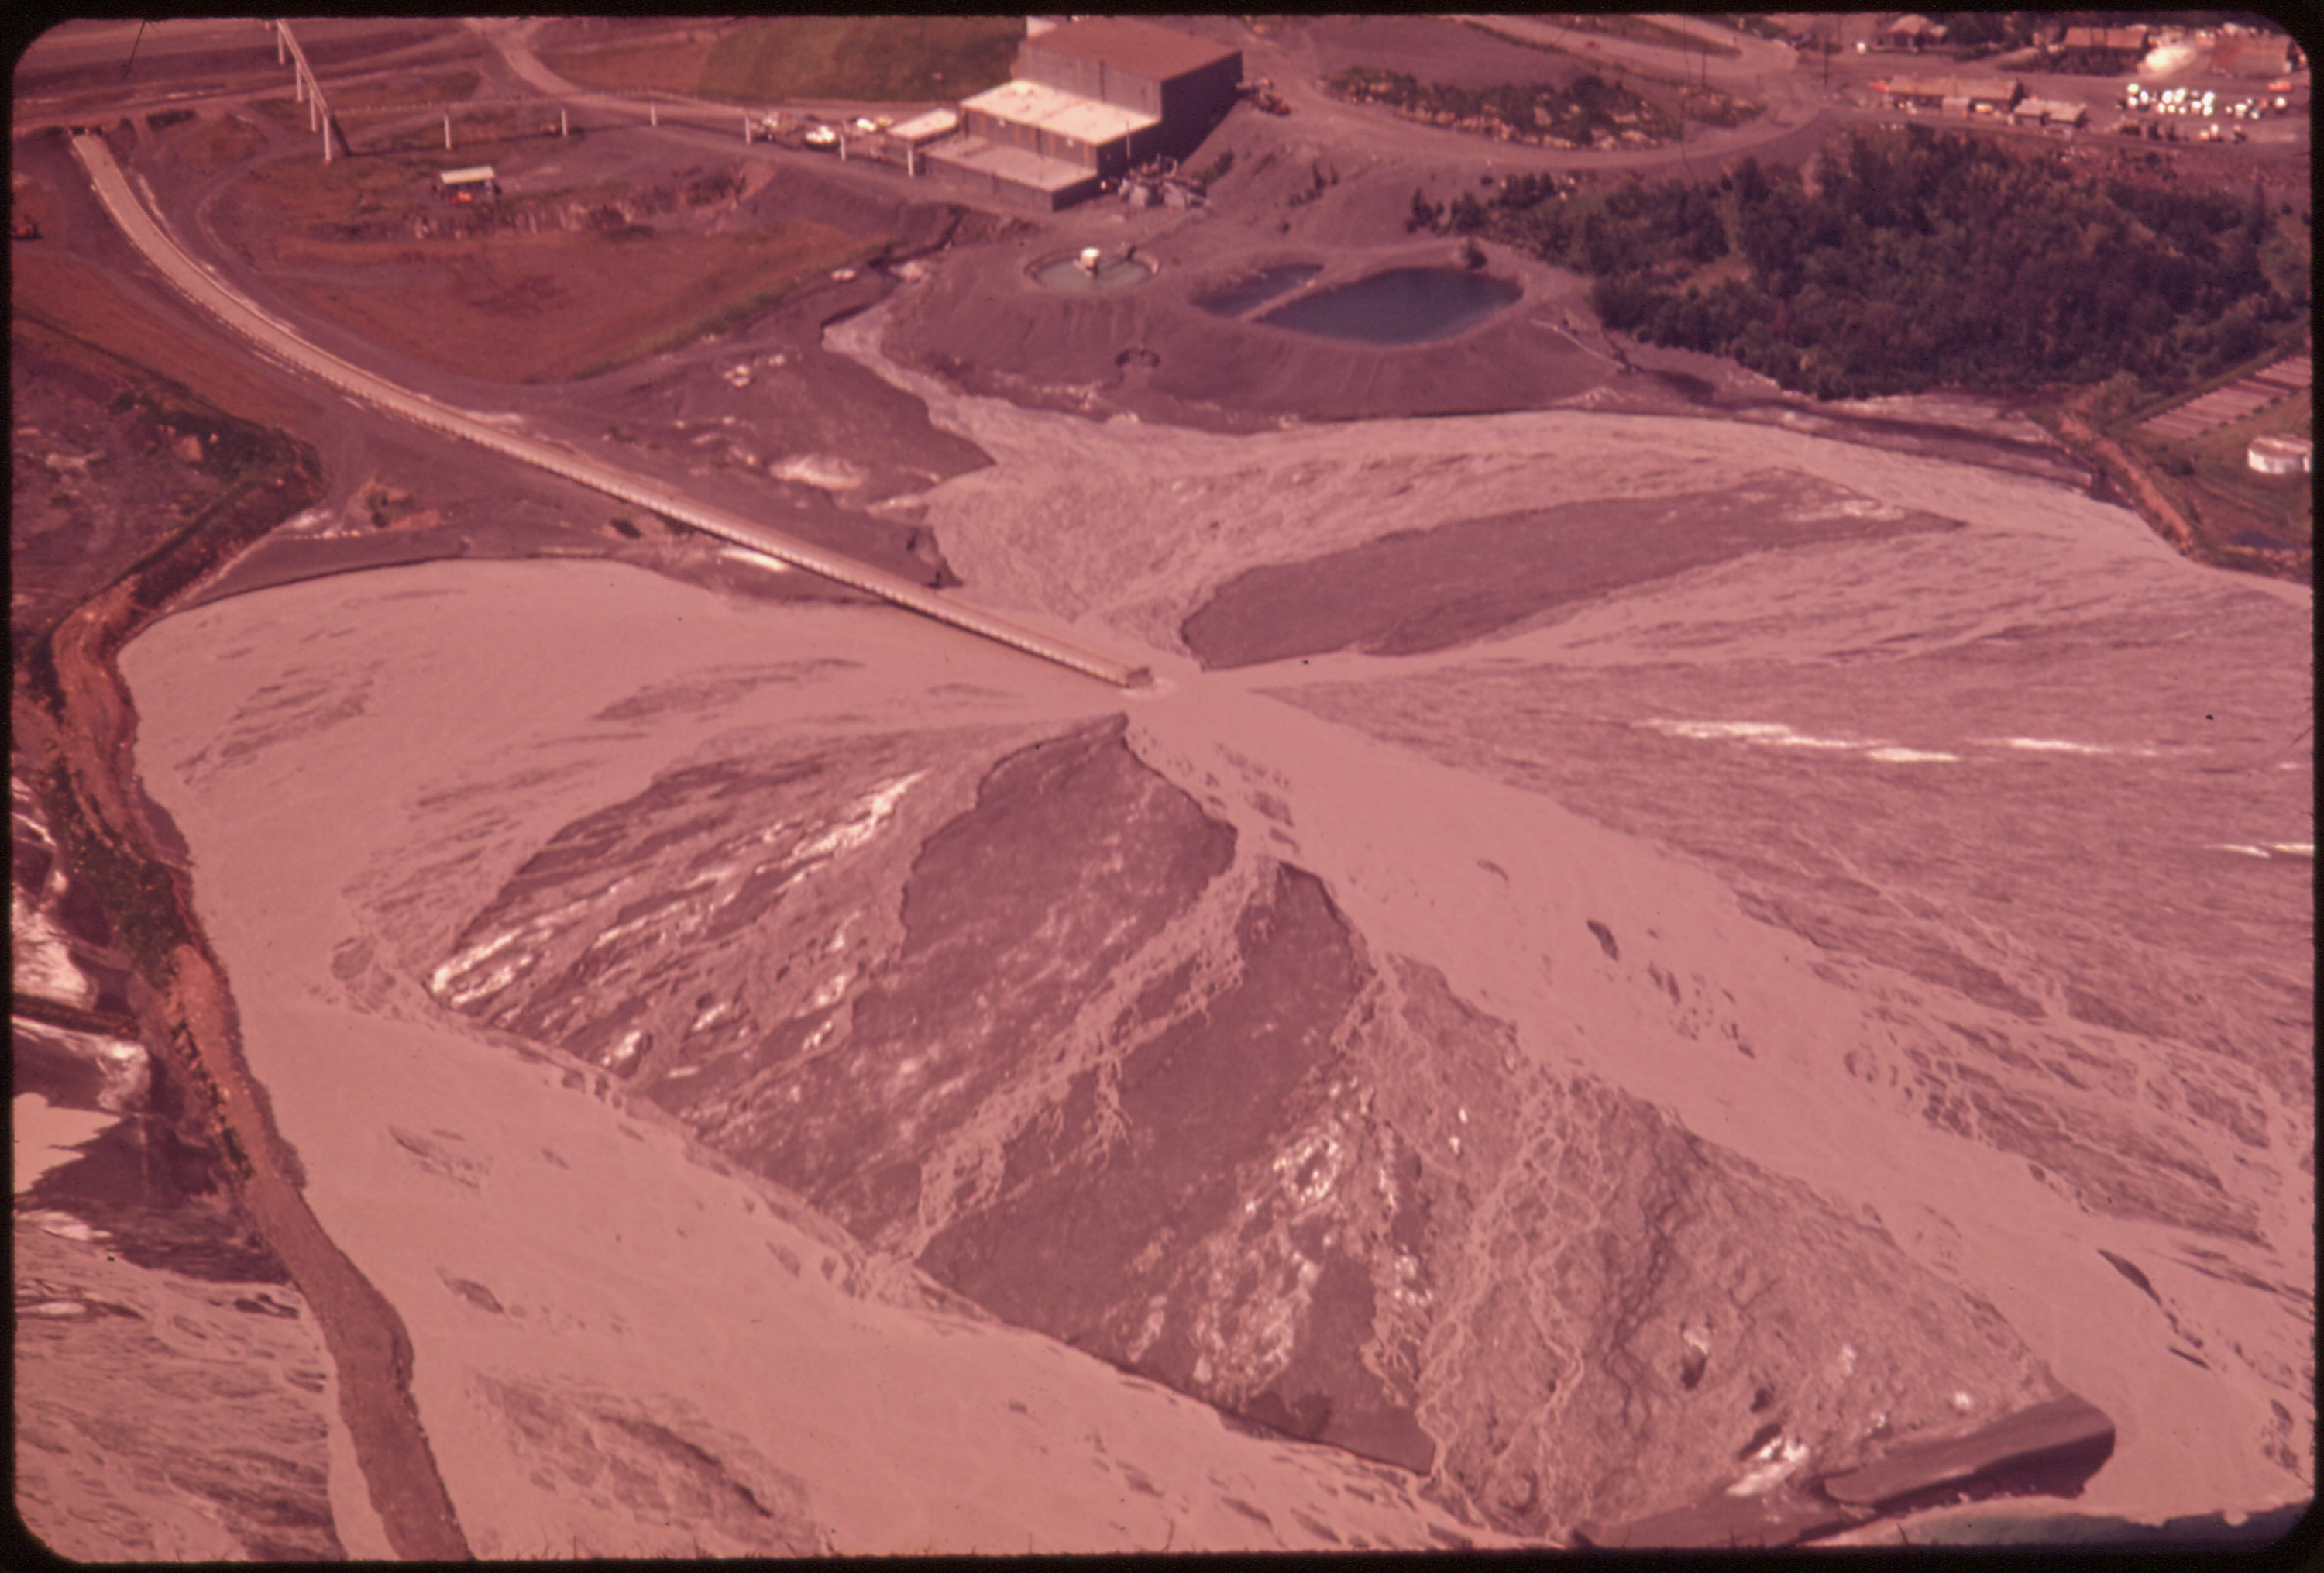 File:RESERVE MINING COMPANY'S TACONITE PLANT IN SILVER BAY  NORTH